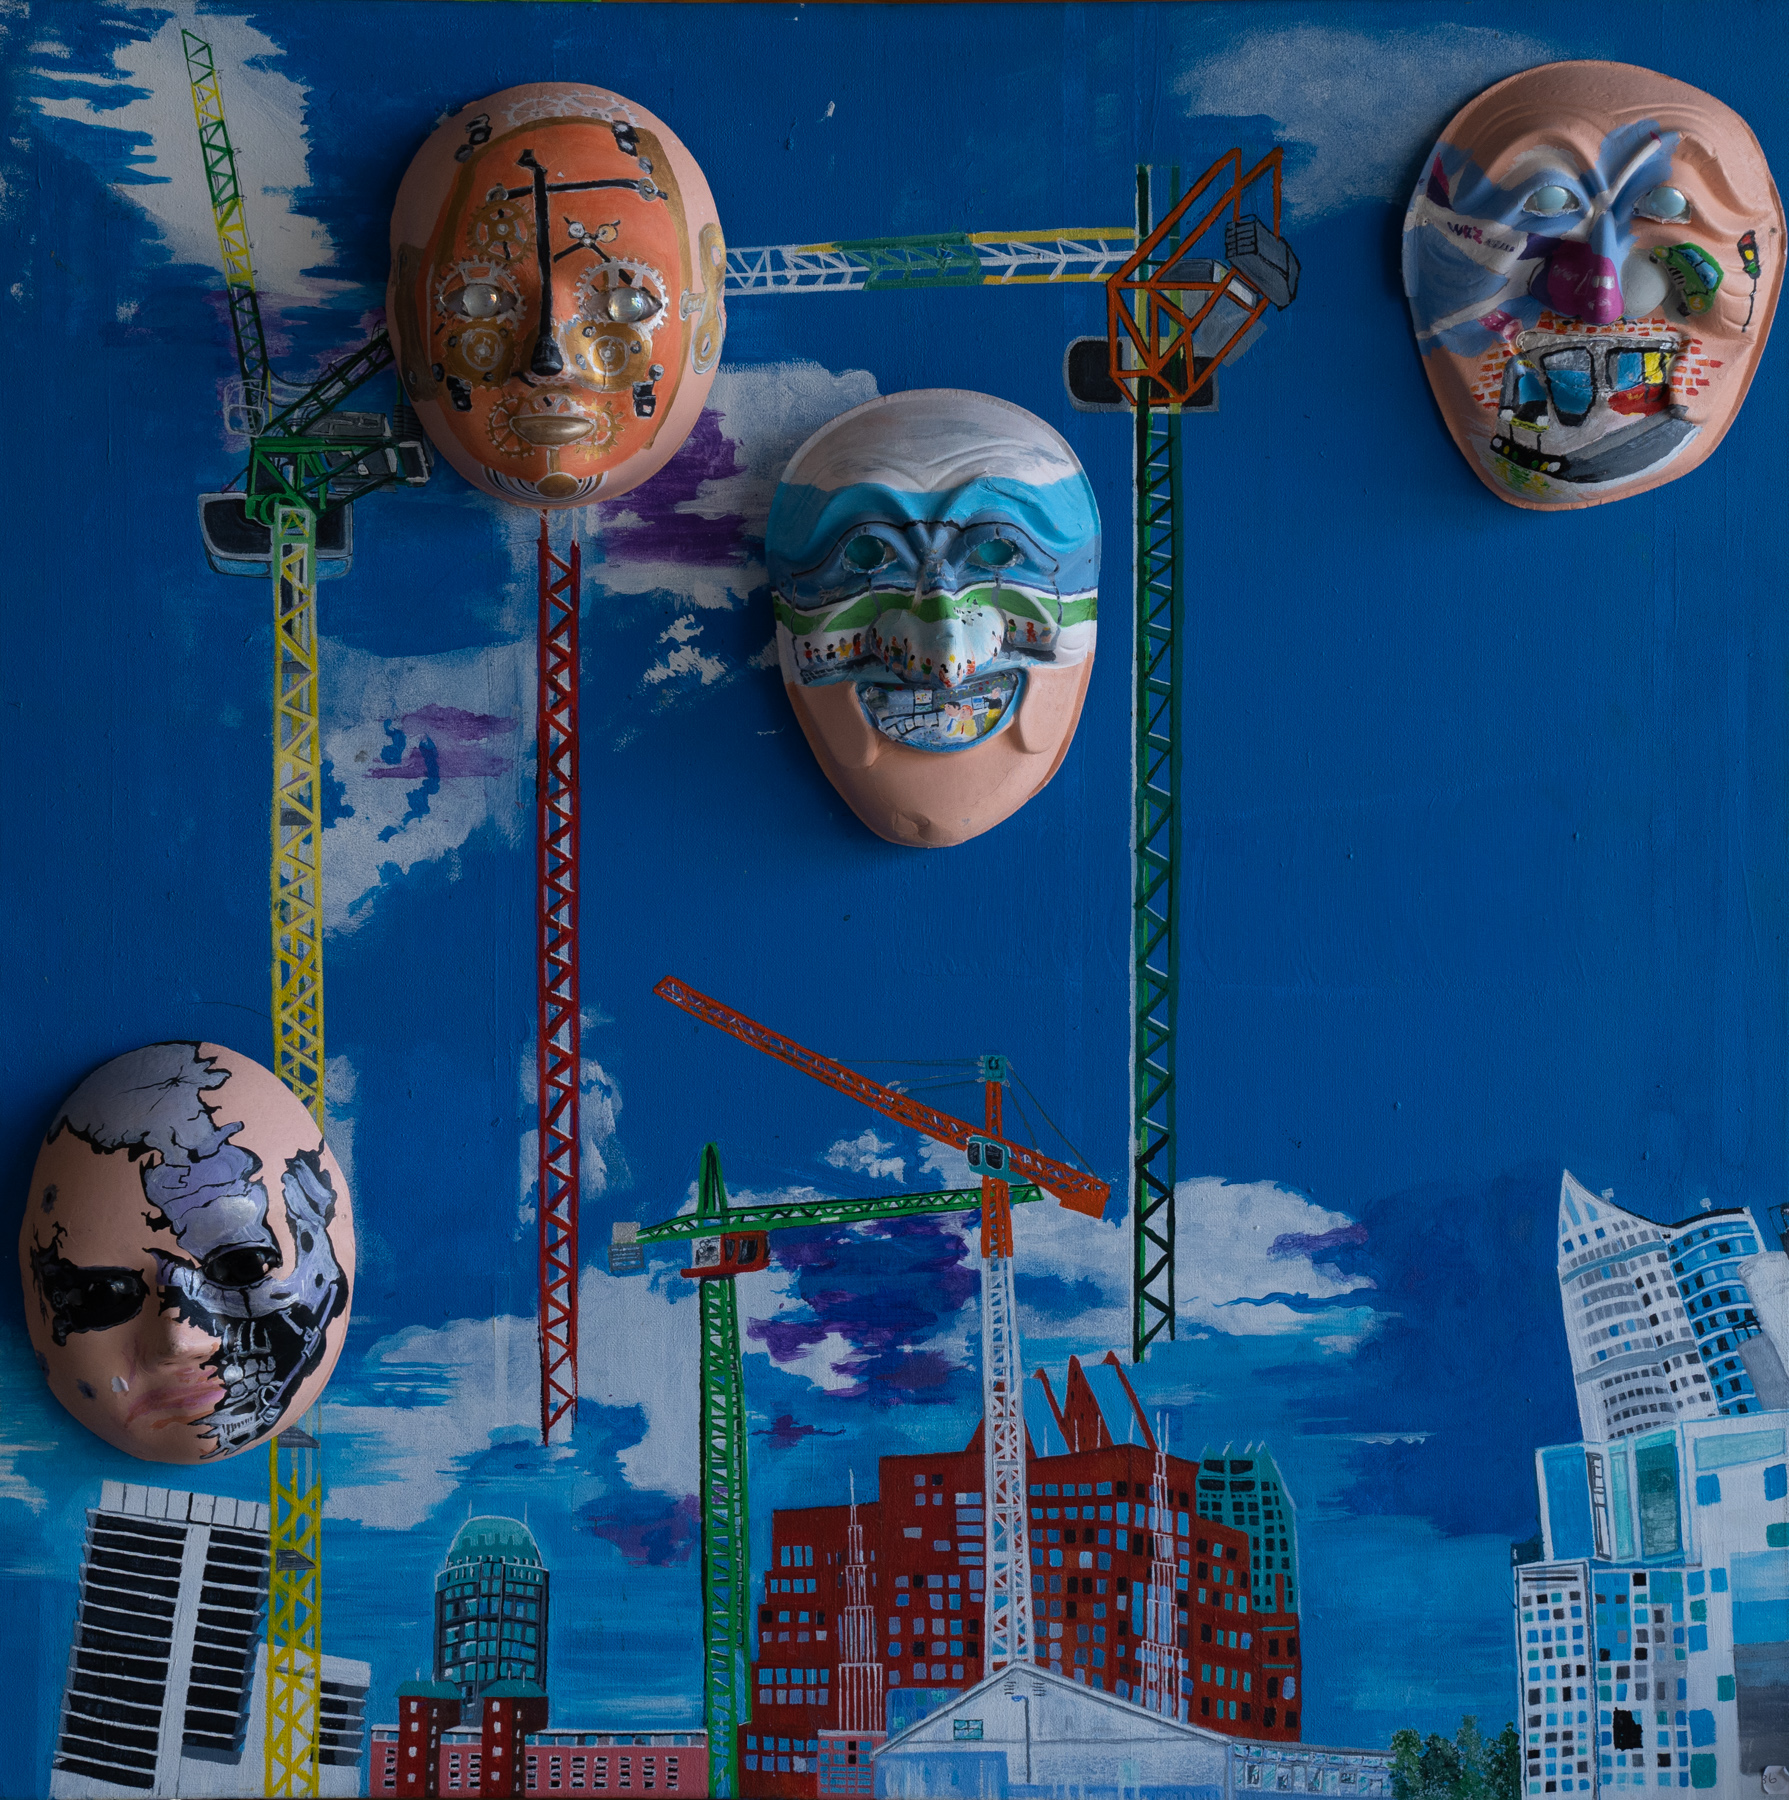 A painting of cranes over a city, with painted masks in the sky